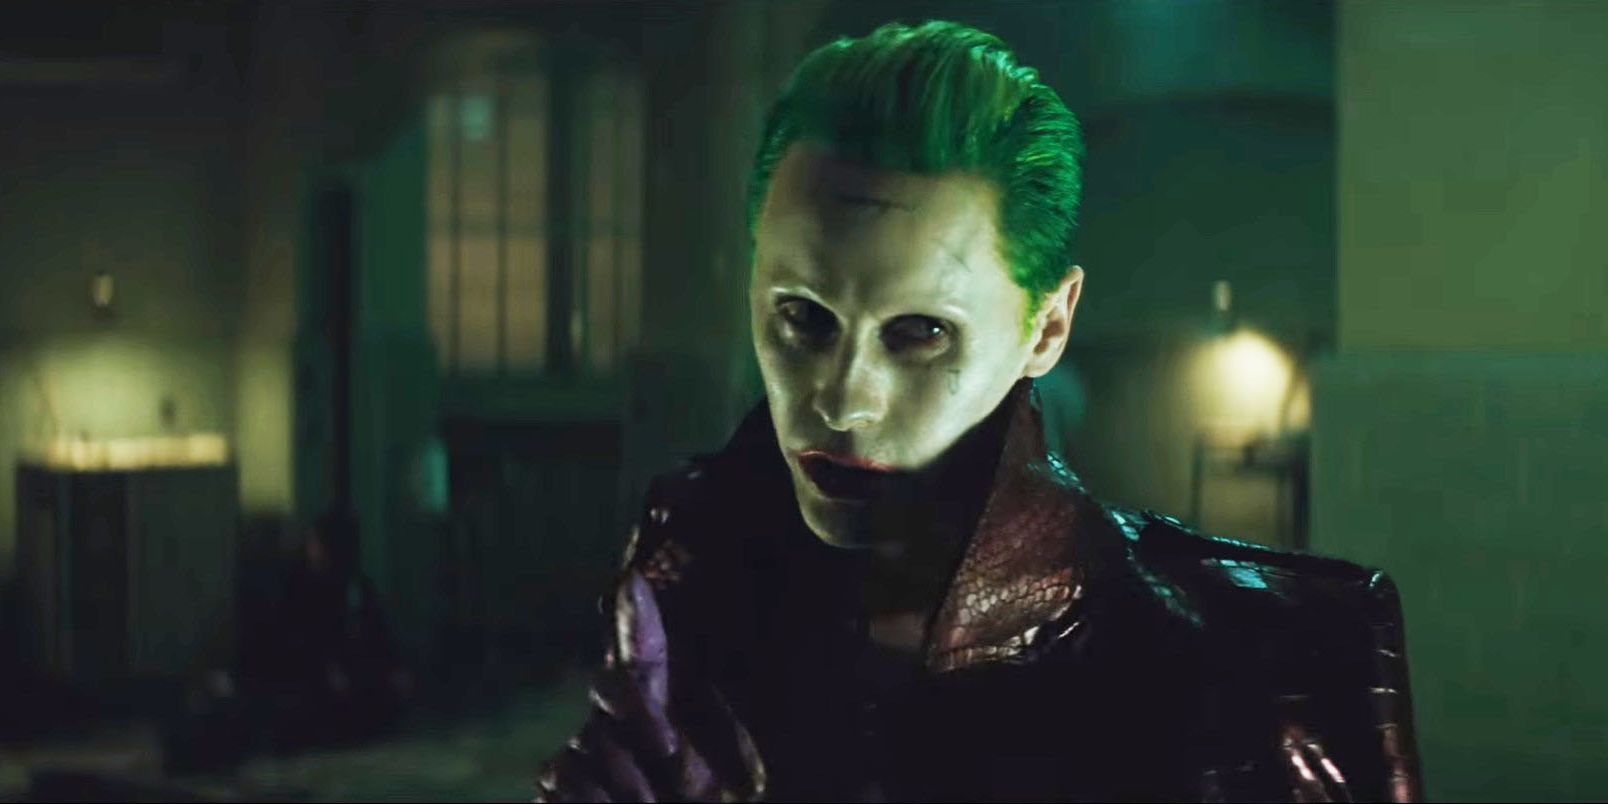 The Joker in Suicide Squad